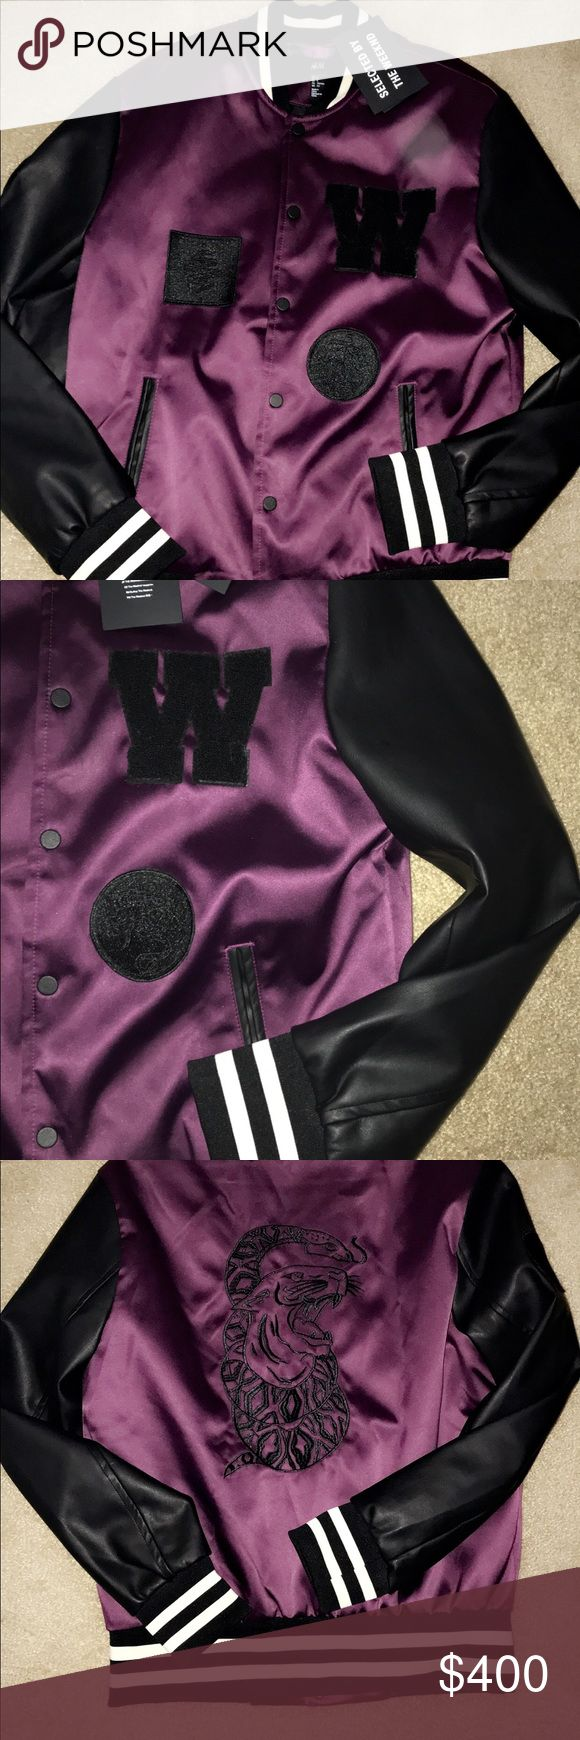 The Weeknd H&M fall 2017 purple letterman's jacket Perfect accessory for this fall, or even a great Christmas gift, or if you are a super fan of the Grammy award winning, XO singer The Weeknd, this must-have jacket was sold exclusively at H&M for there fall collection, it sold out within minutes. (Never been worn and in great condition) H&M Jackets & Coats Bomber & Varsity